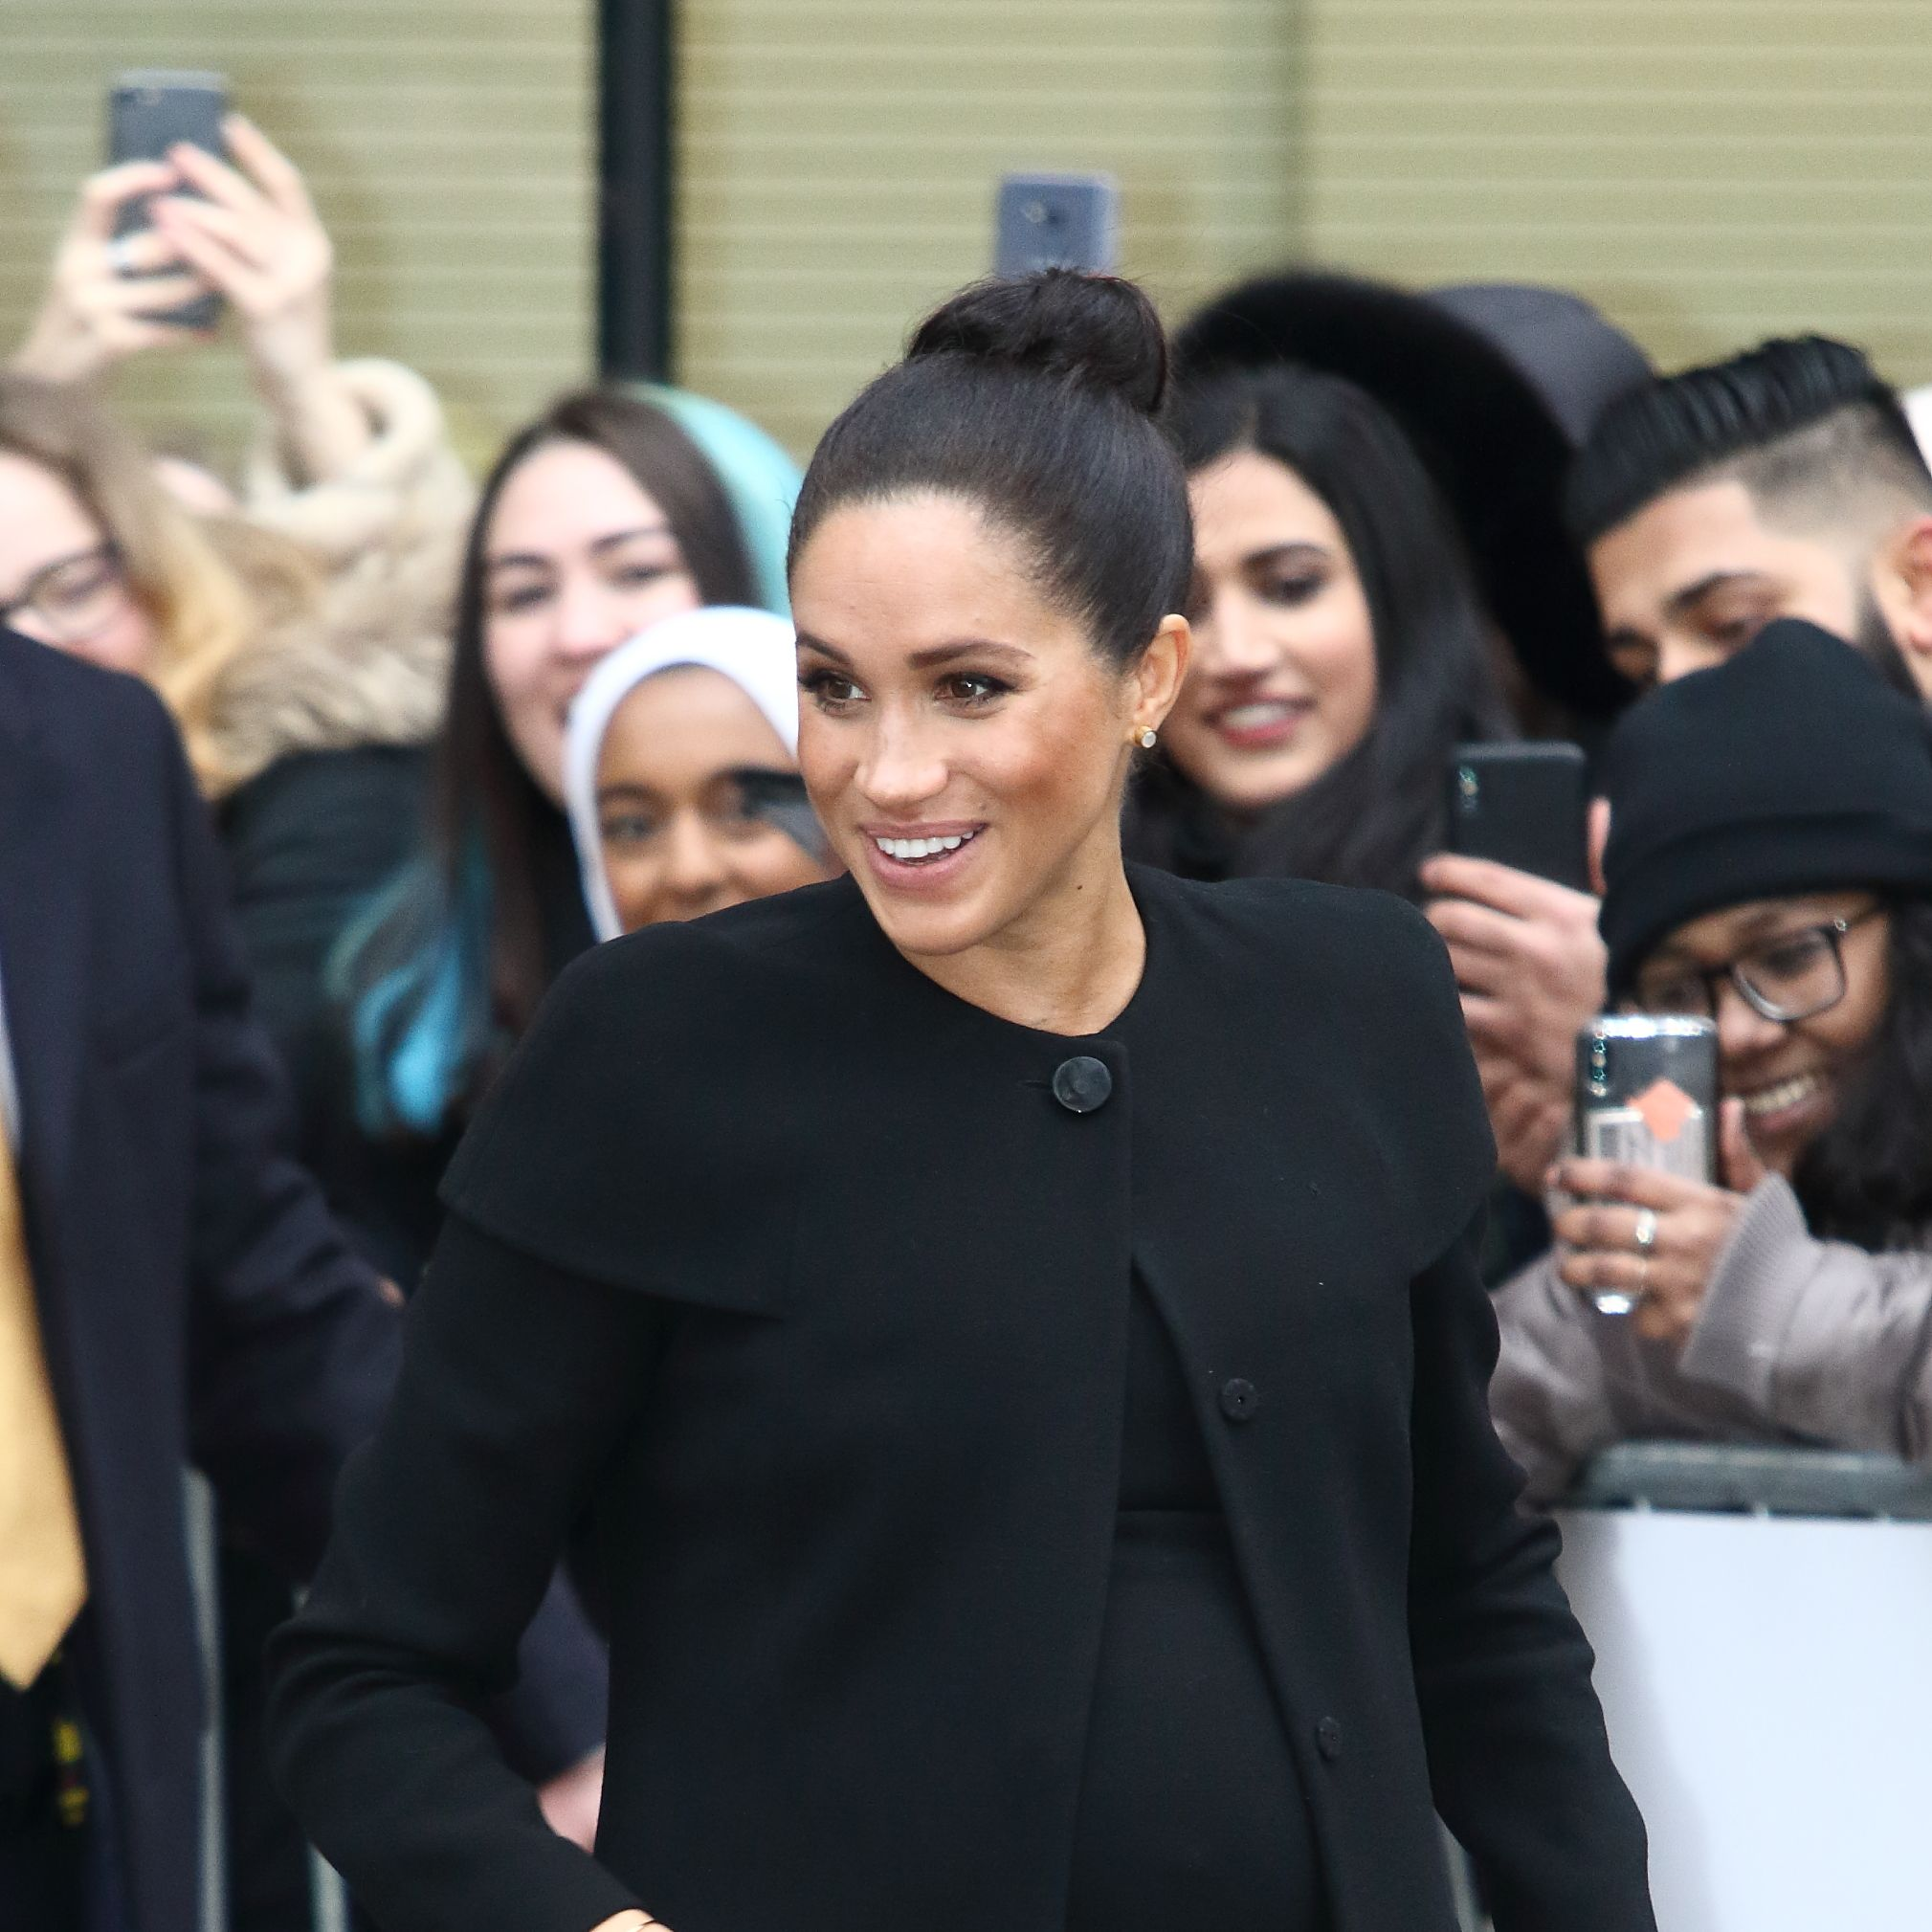 Meghan Markle Reportedly Supports a Campaign for More Diversity in British Universities